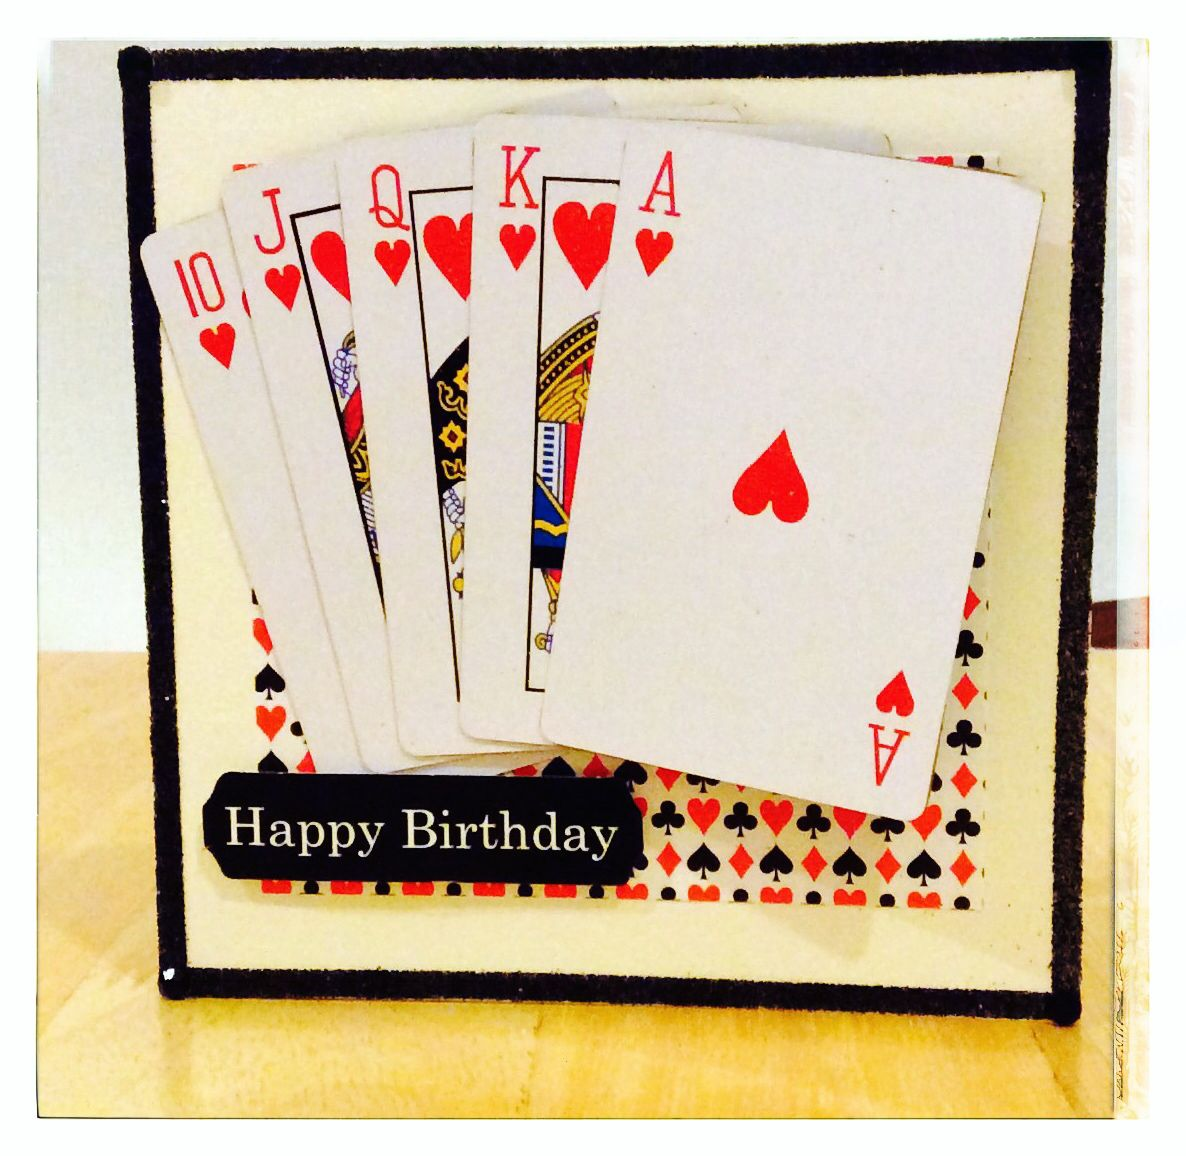 Happy Birthday Card For A Poker Lover (With Images